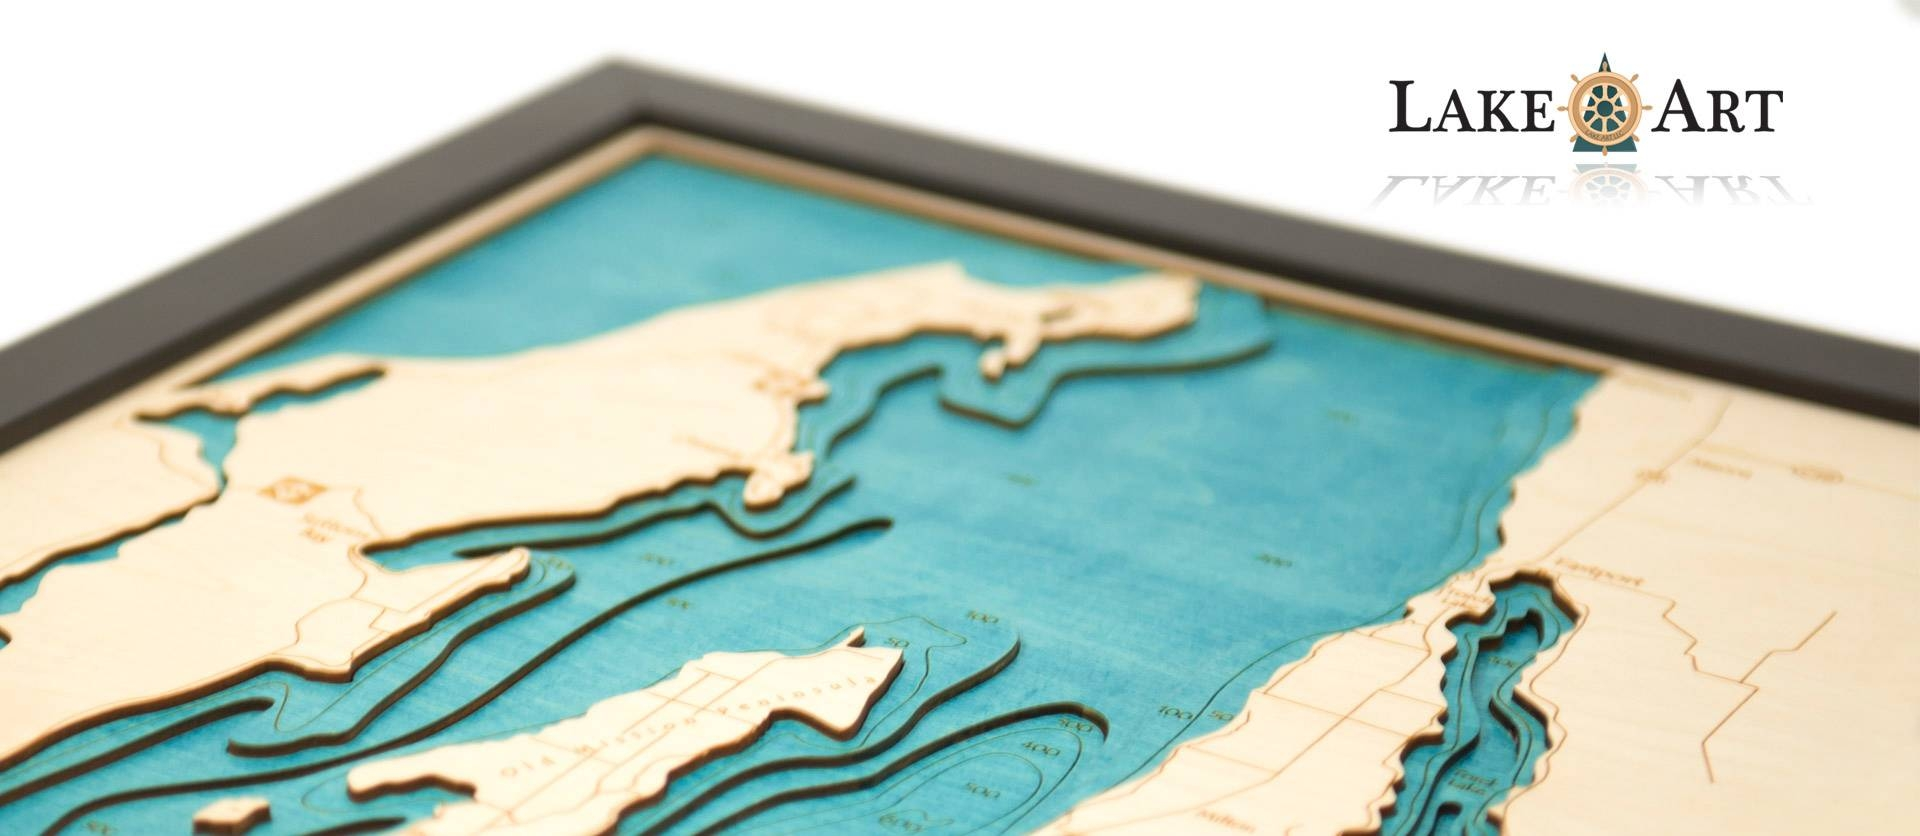 Lake Art – Original, Authentic, 100% Made In America Intended For Current Lake Map Wall Art (View 18 of 20)